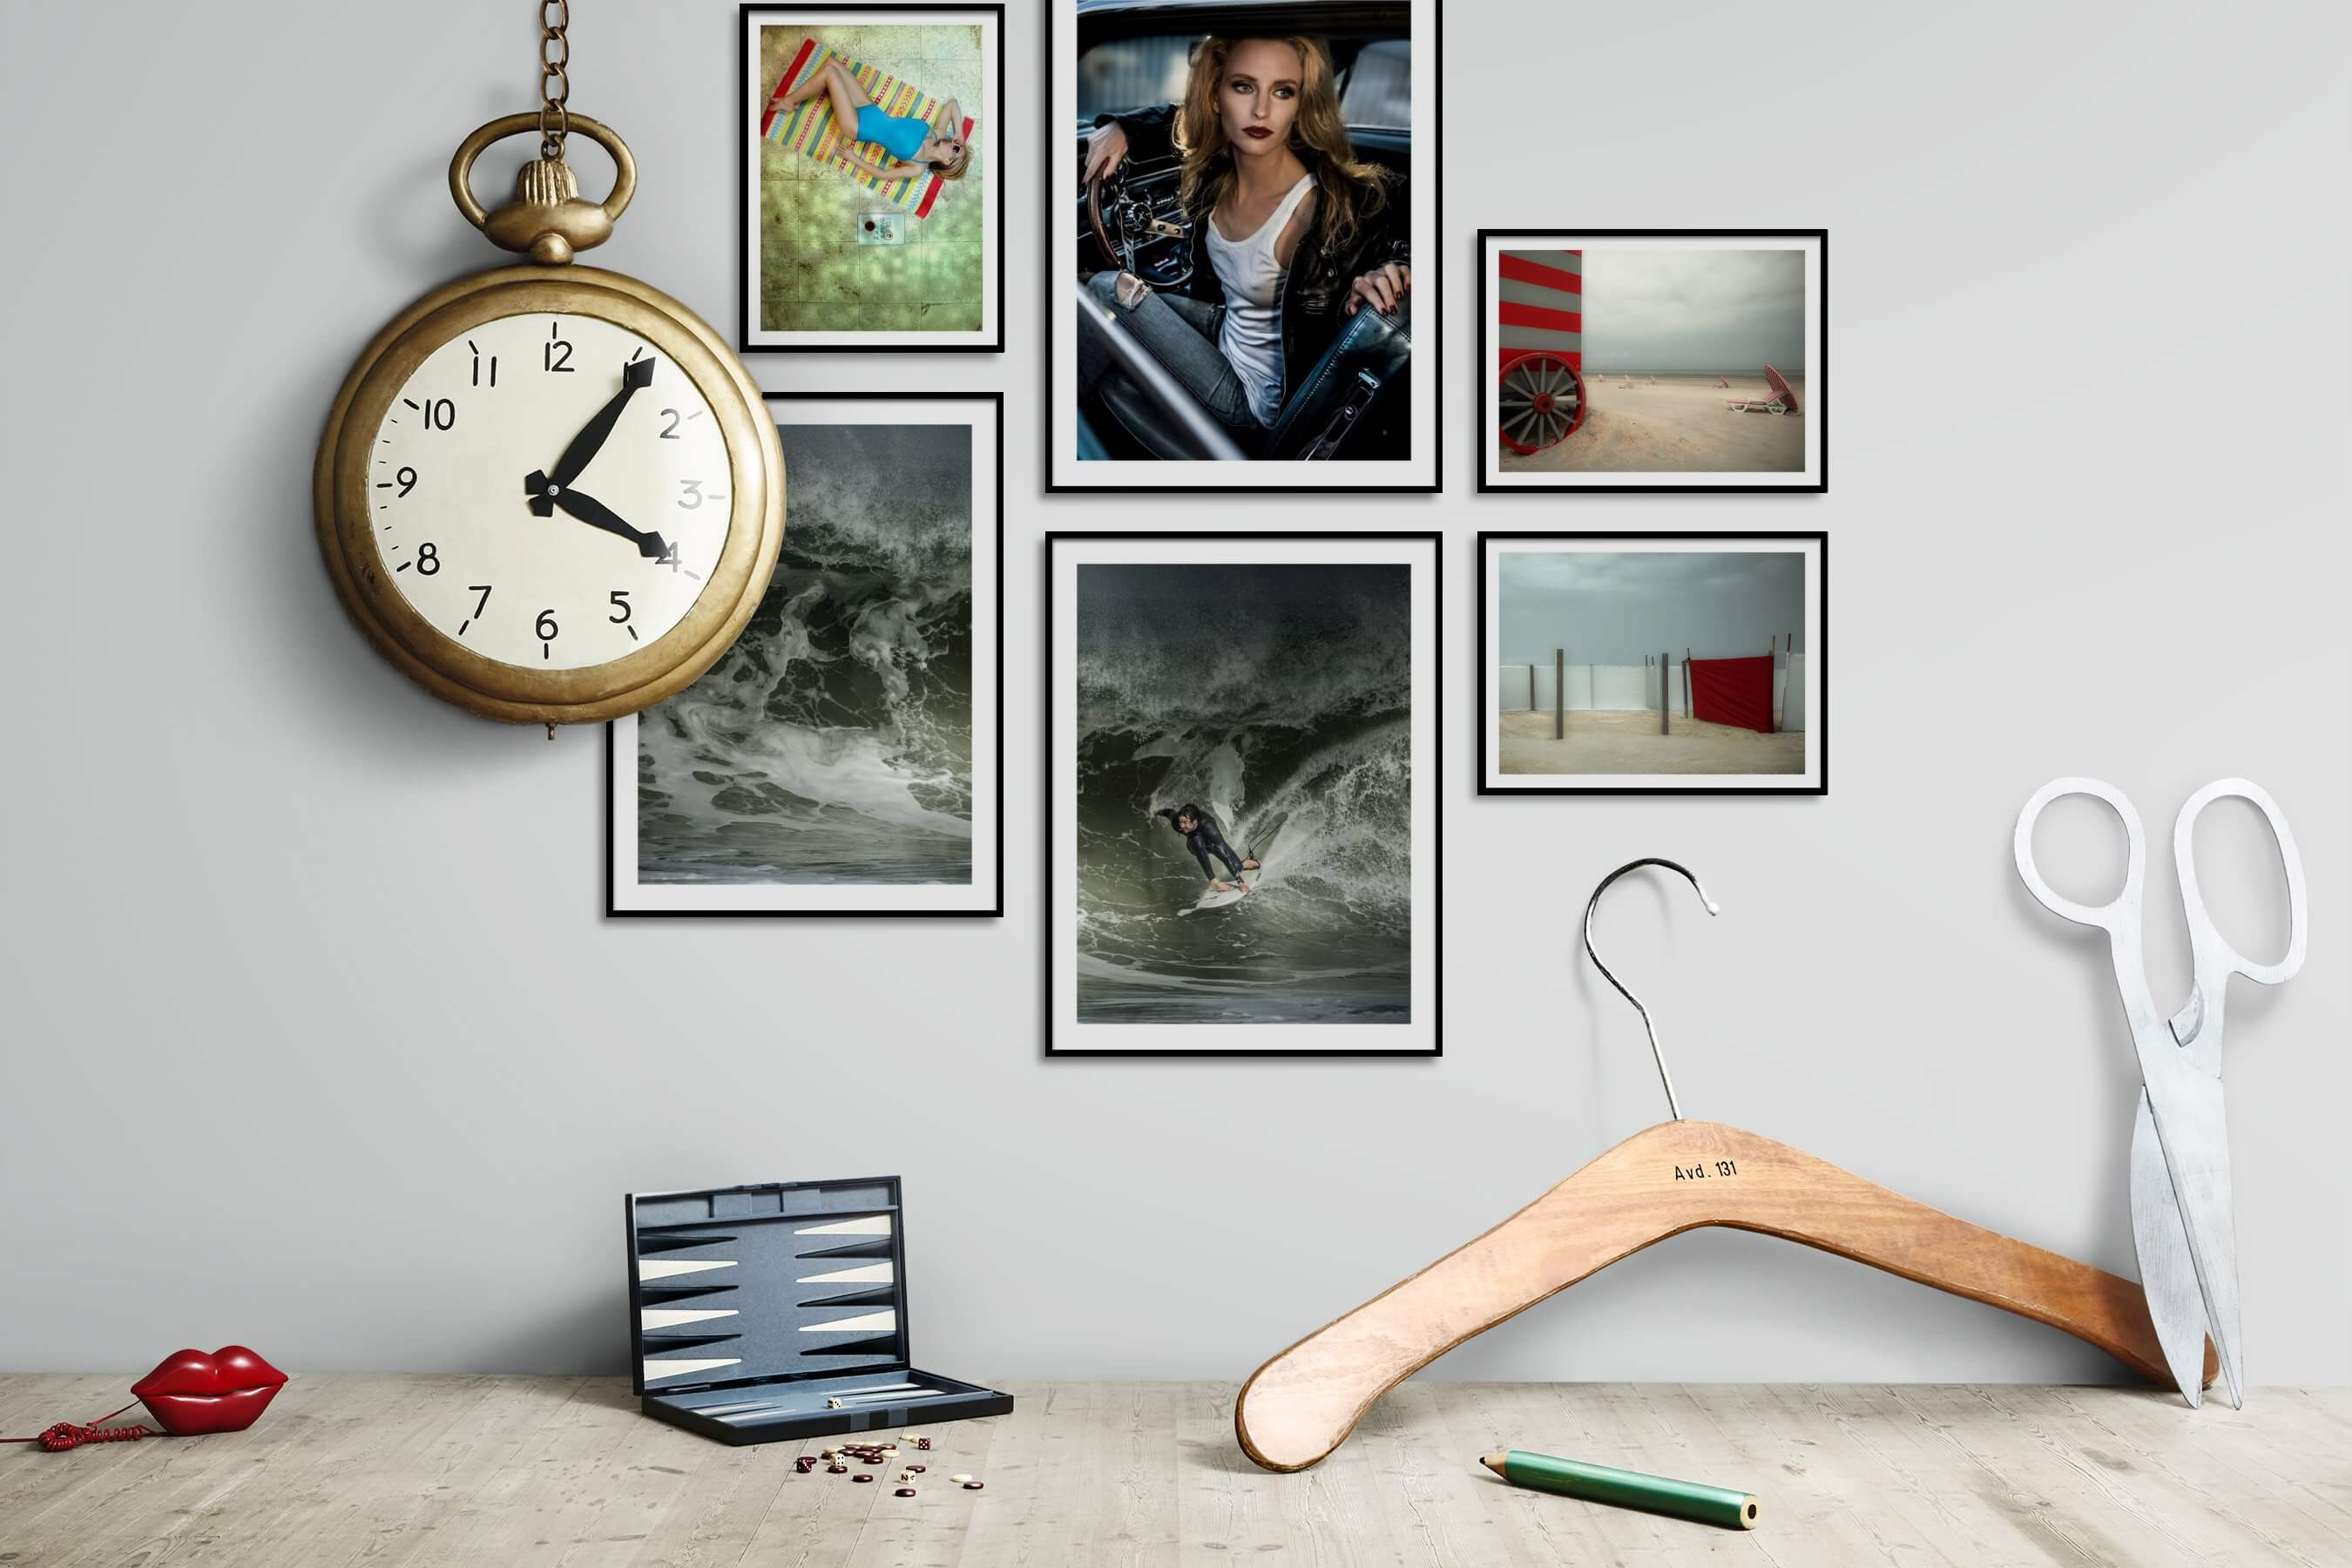 Gallery wall idea with six framed pictures arranged on a wall depicting Fashion & Beauty, Beach & Water, Vintage, and For the Moderate